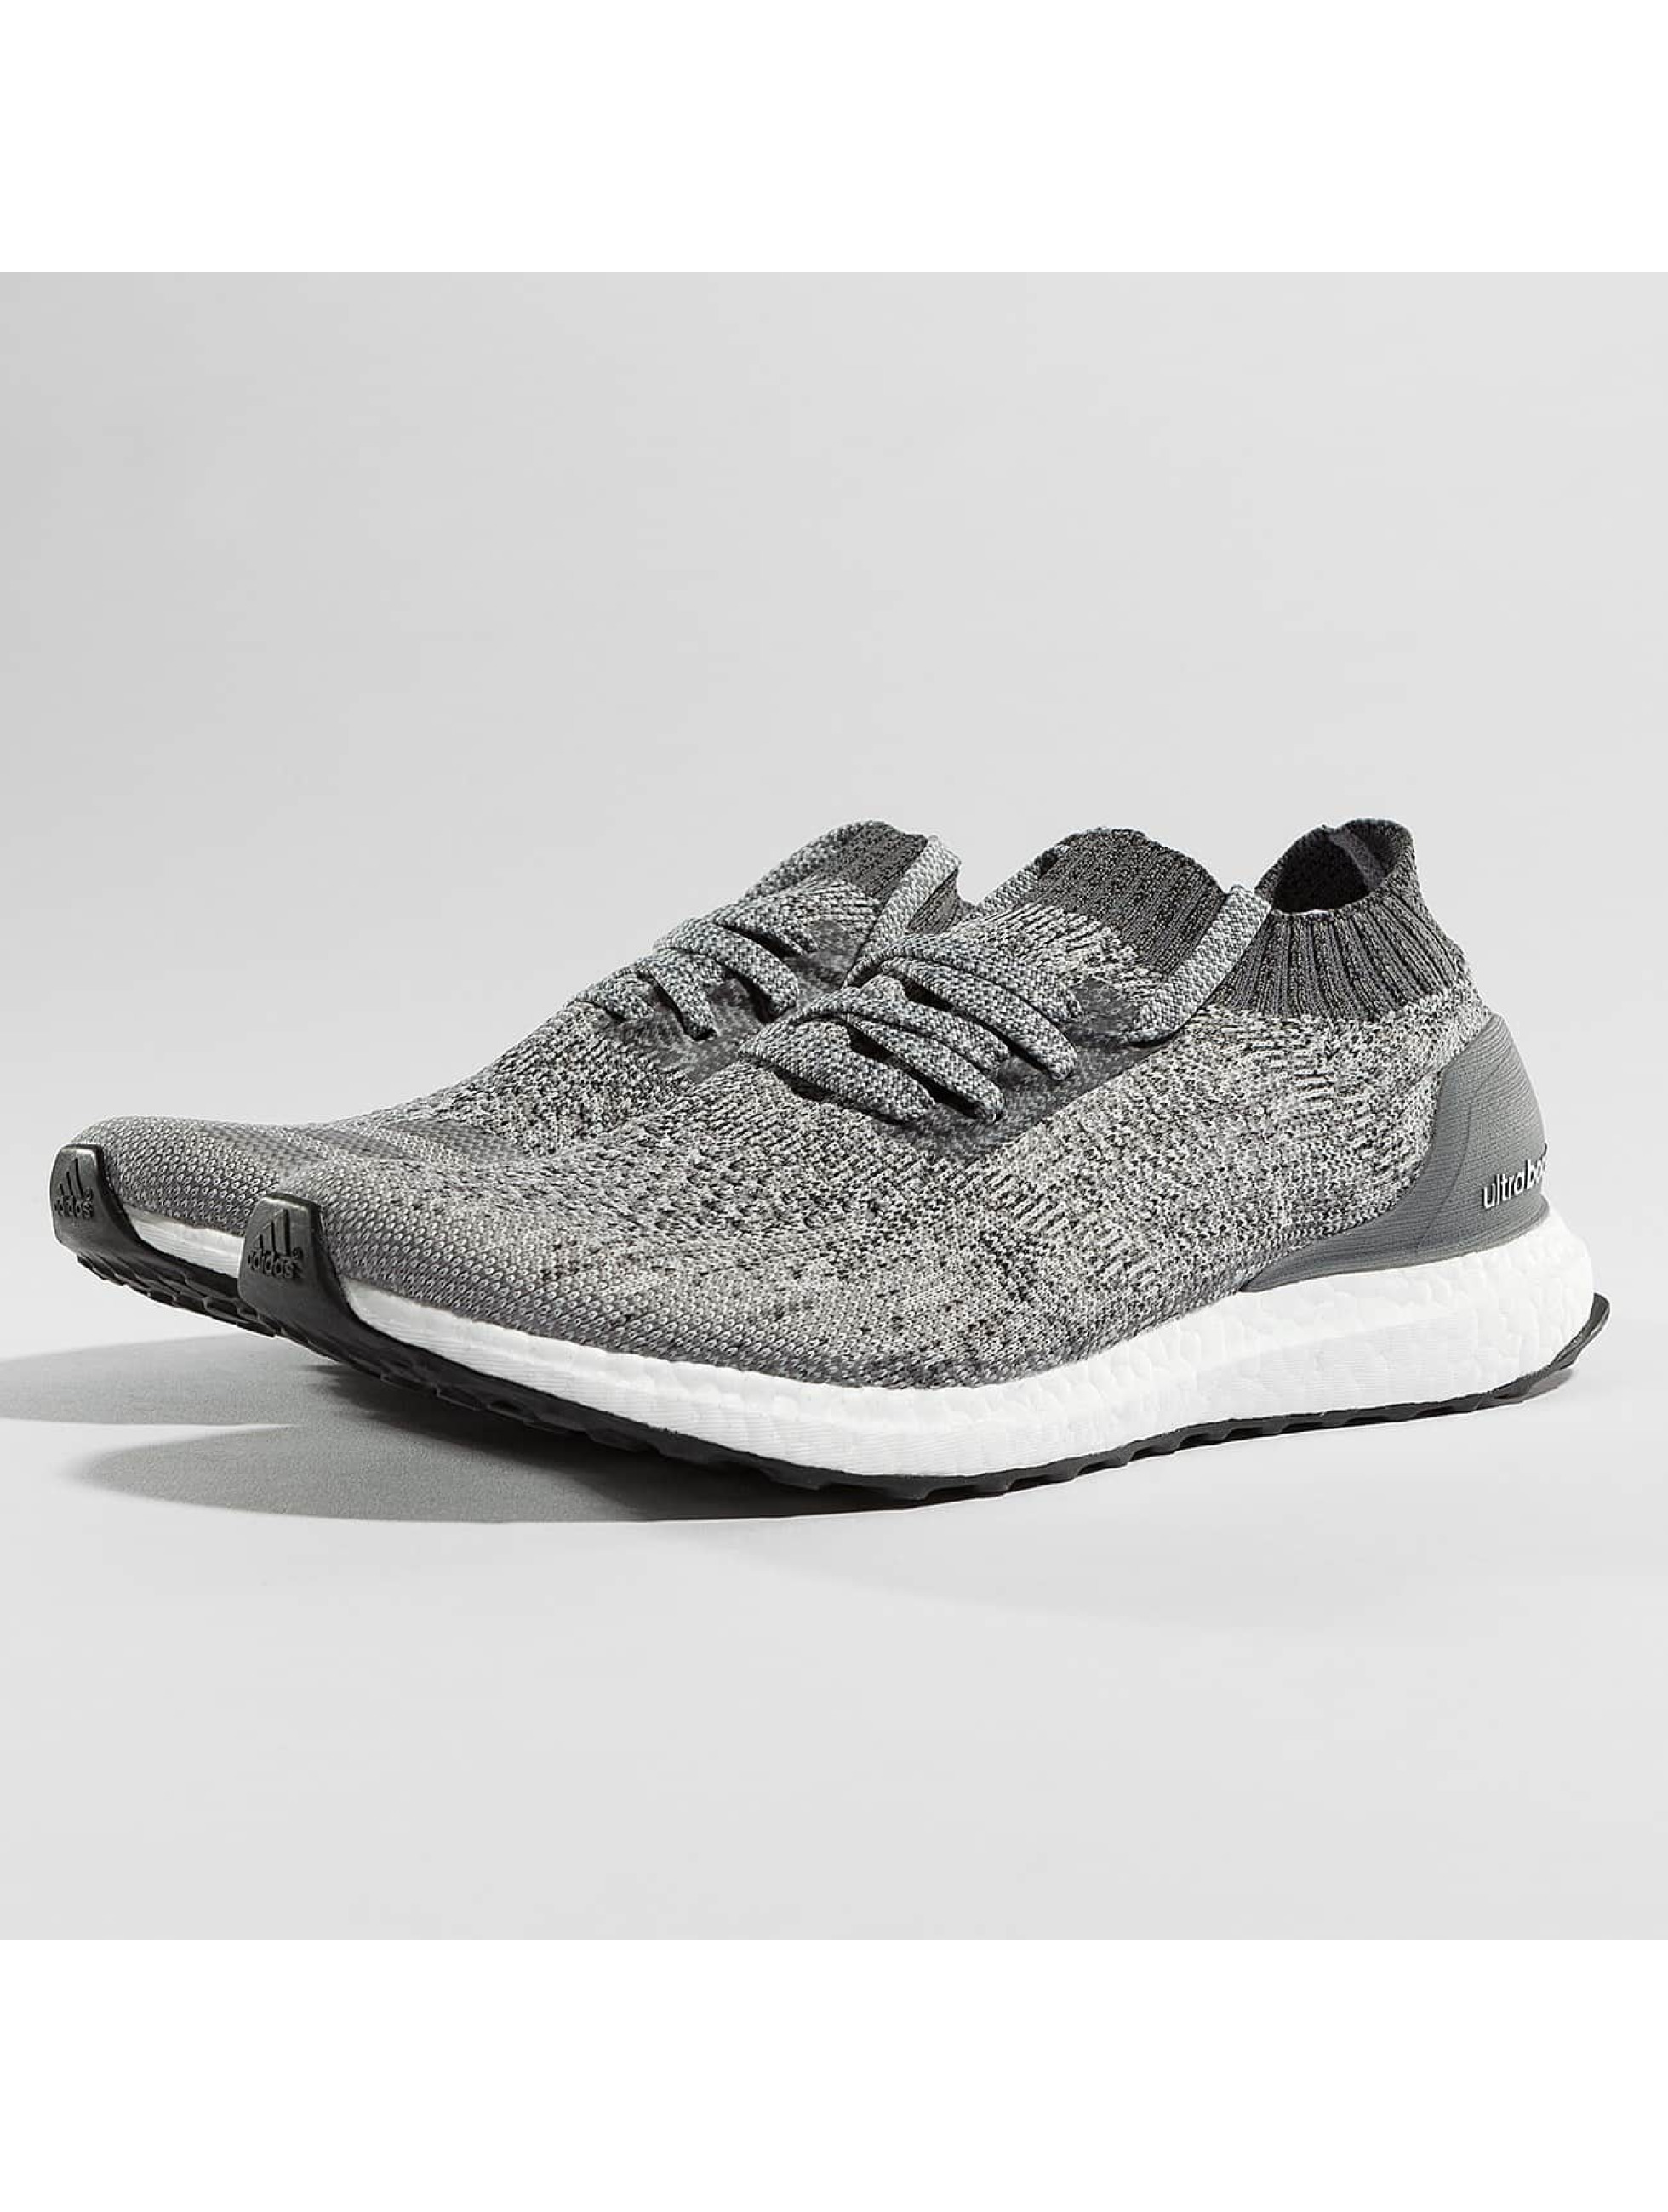 adidas performance herren schuhe sneaker ultra boost uncaged ebay. Black Bedroom Furniture Sets. Home Design Ideas